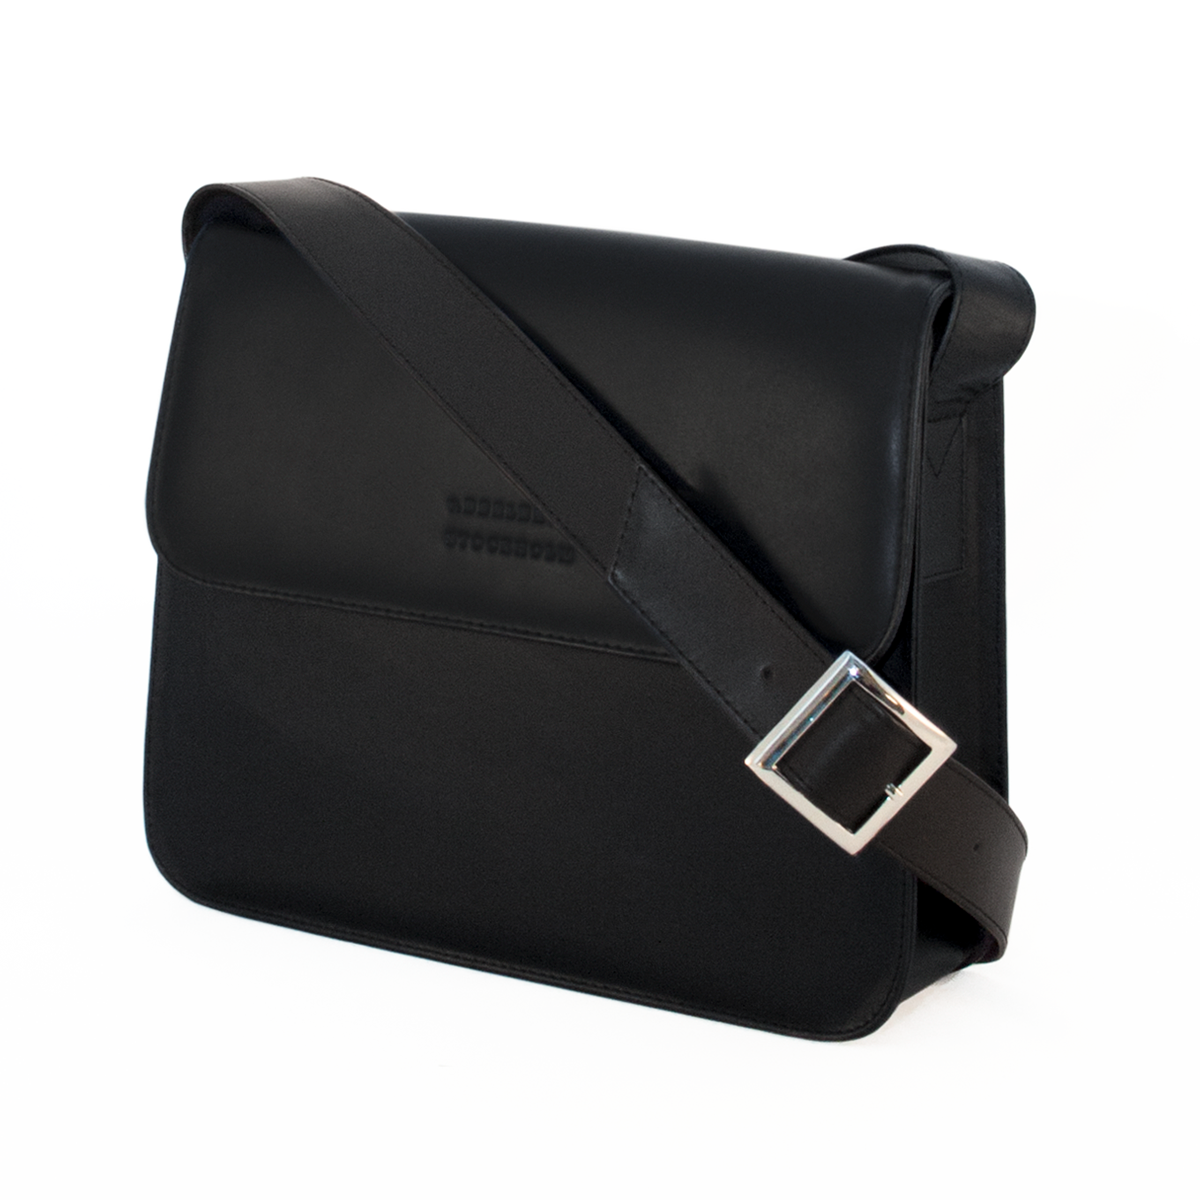 New Handbag Black